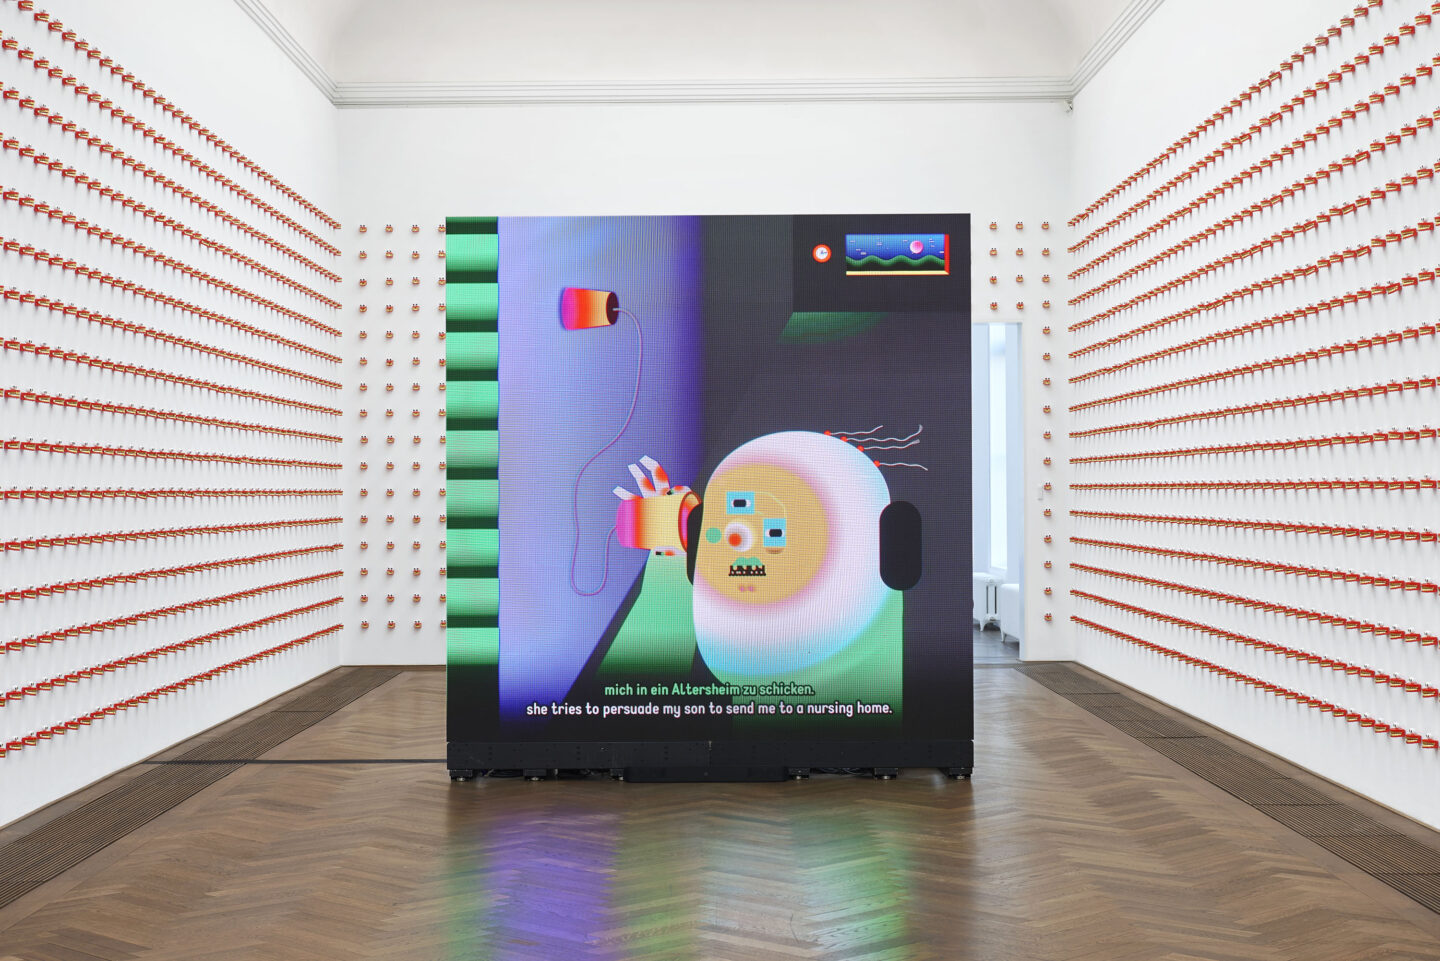 Exhibition View Wong Ping Soloshow «Golden Shower / view on Dear, can I give you a hand?, 2018» at Kunsthalle Basel, 2019 / Photo: Philipp Hänger / Kunsthalle Basel / Courtesy: Courtesy of the artist, Edouard Malingue Gallery, Hong Kong / Shanghai, and Solomon R. Guggenheim Museum, New York